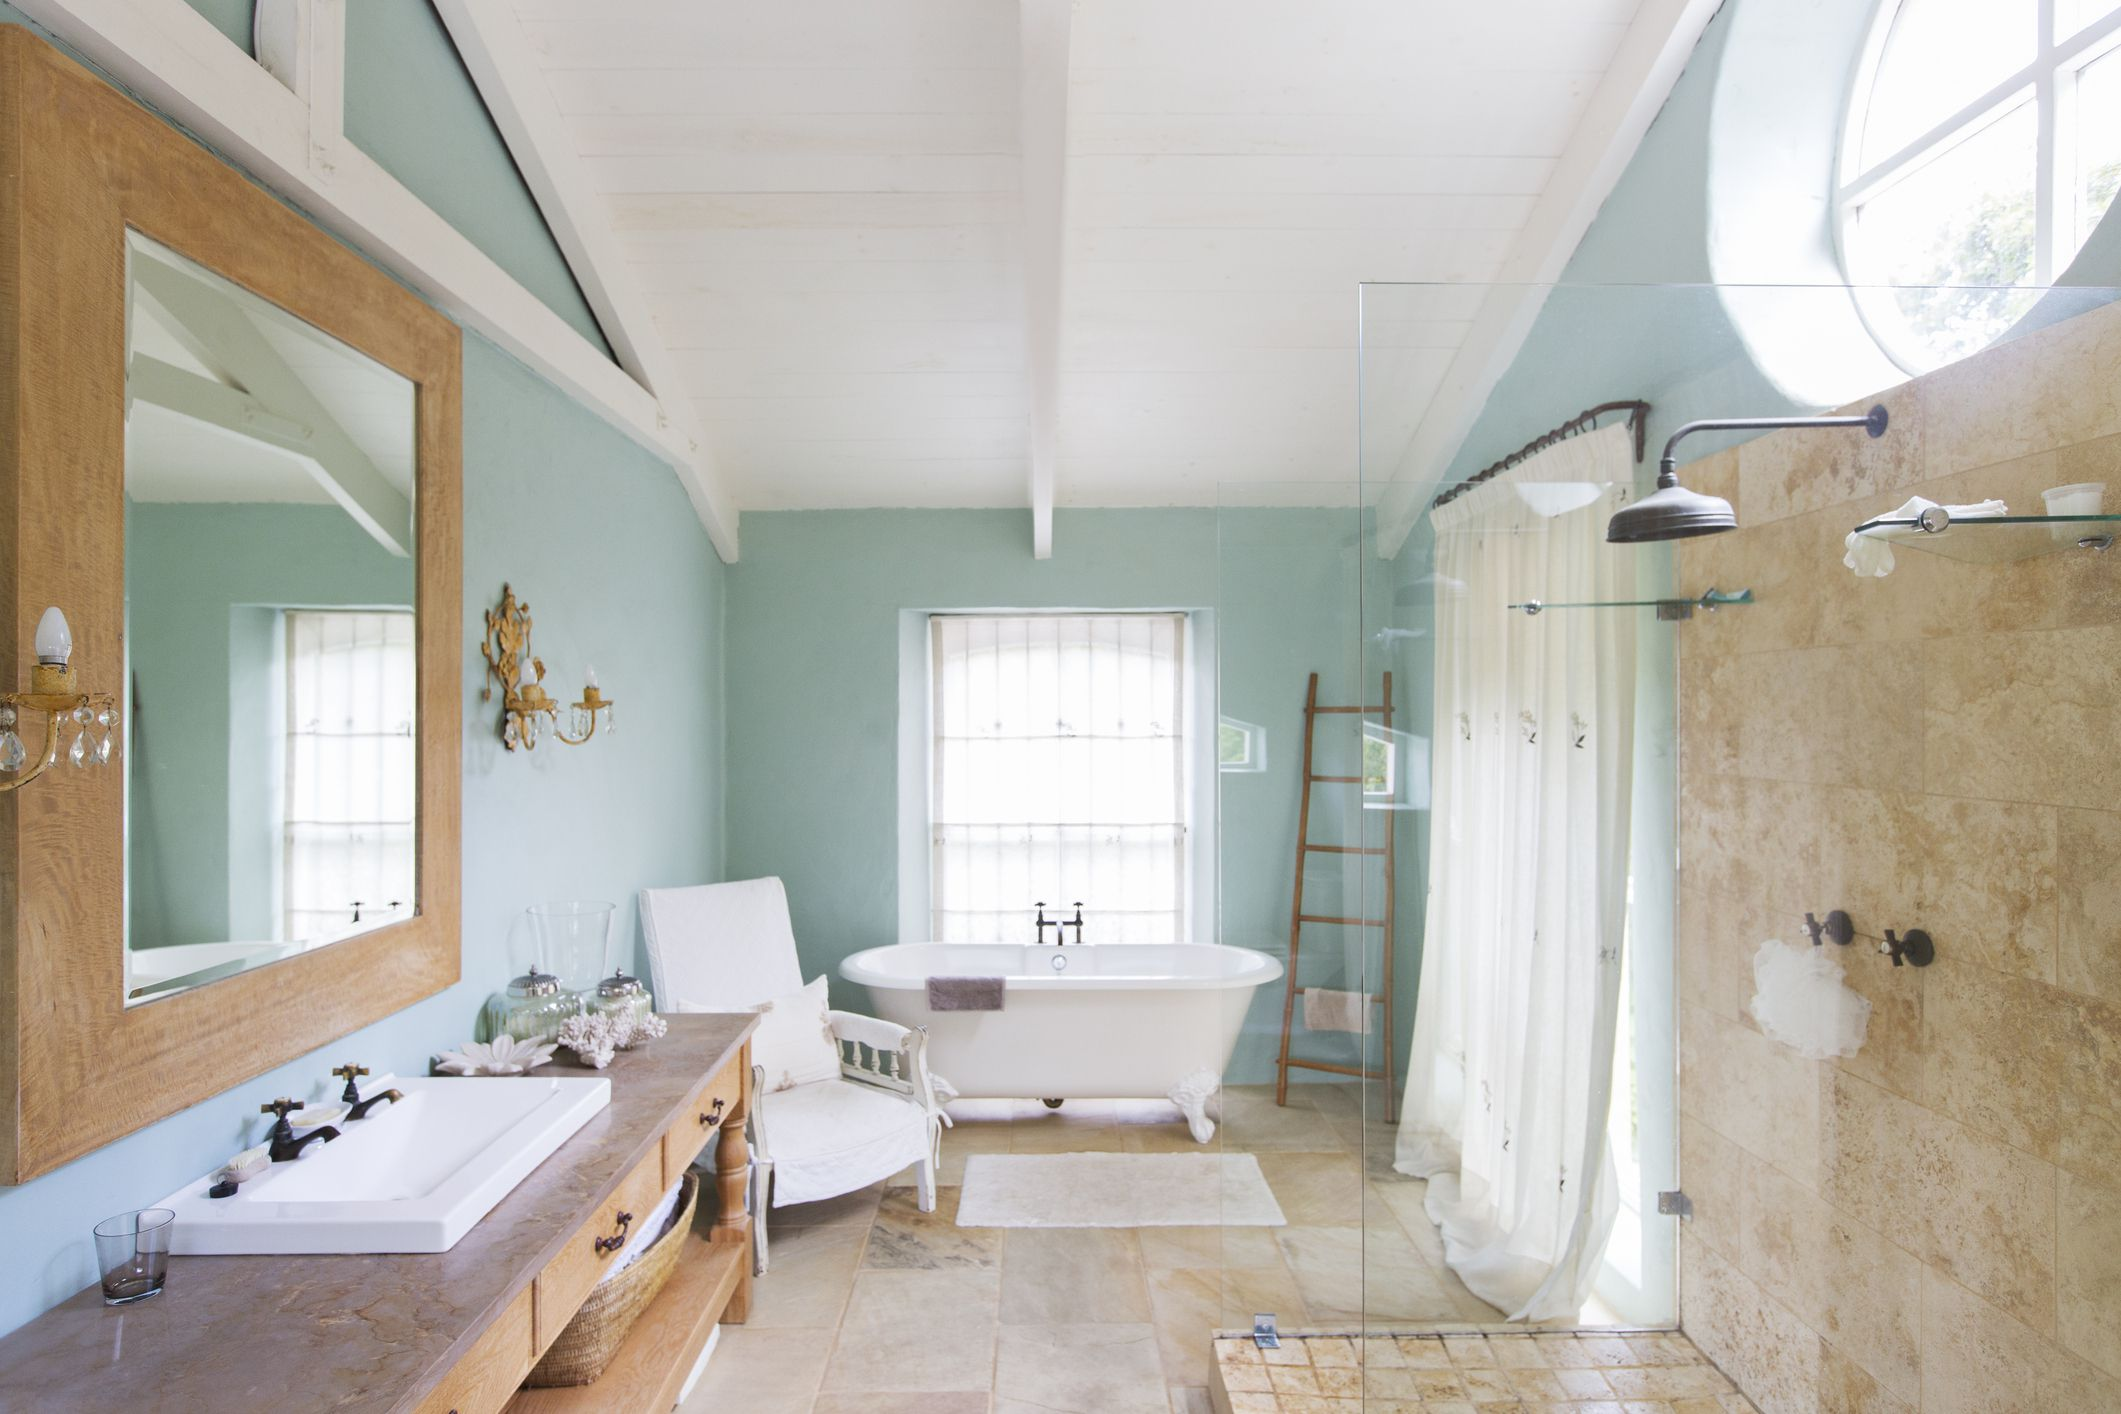 3 Best Interior House Paints Ranked For Quality and Cost